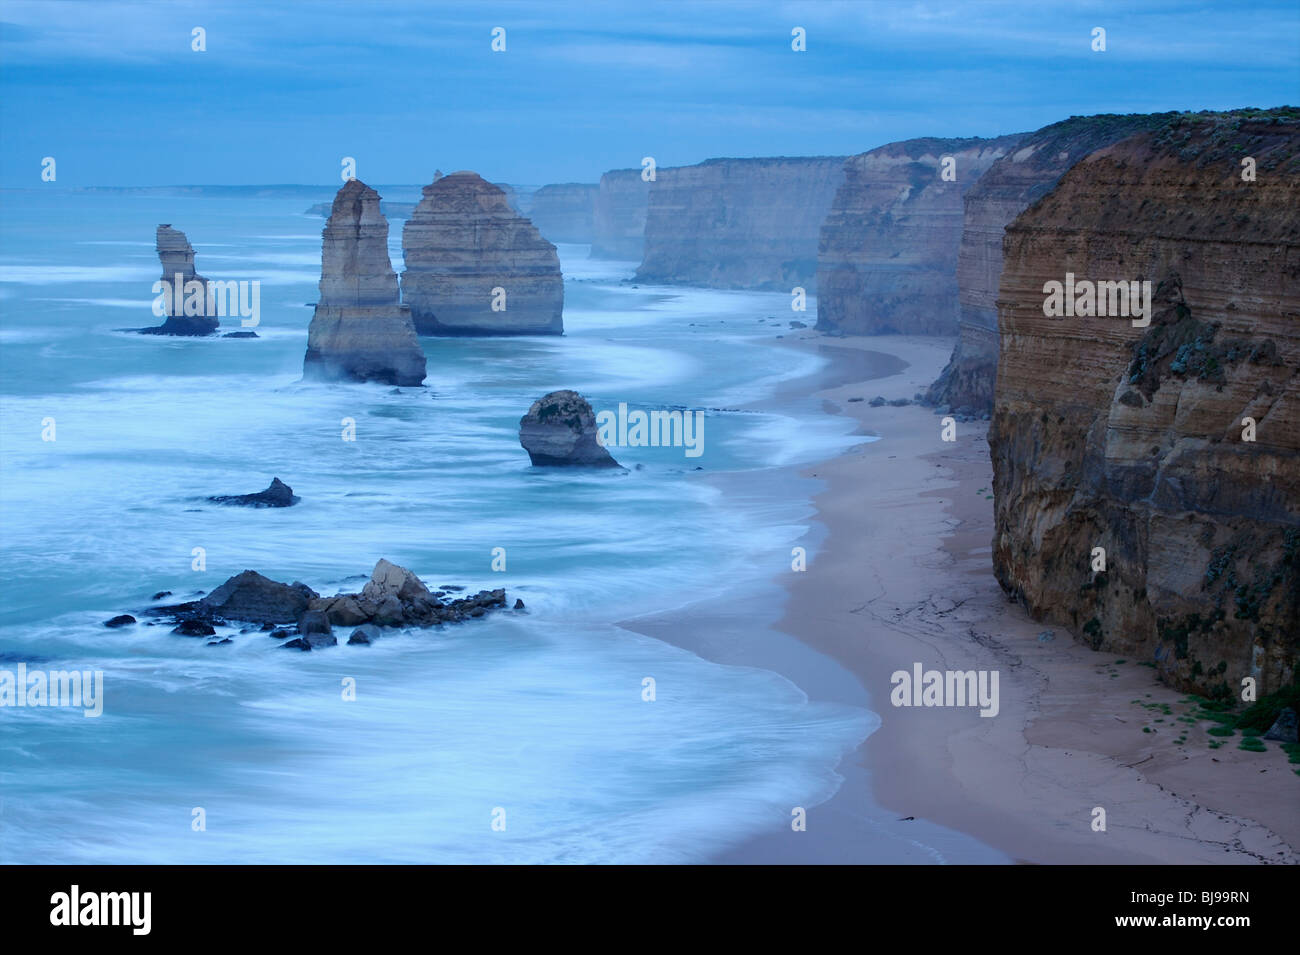 The sky was becoming brighter and another day was about too start at the Great Ocean Road in Victoria, Australia. Stock Photo